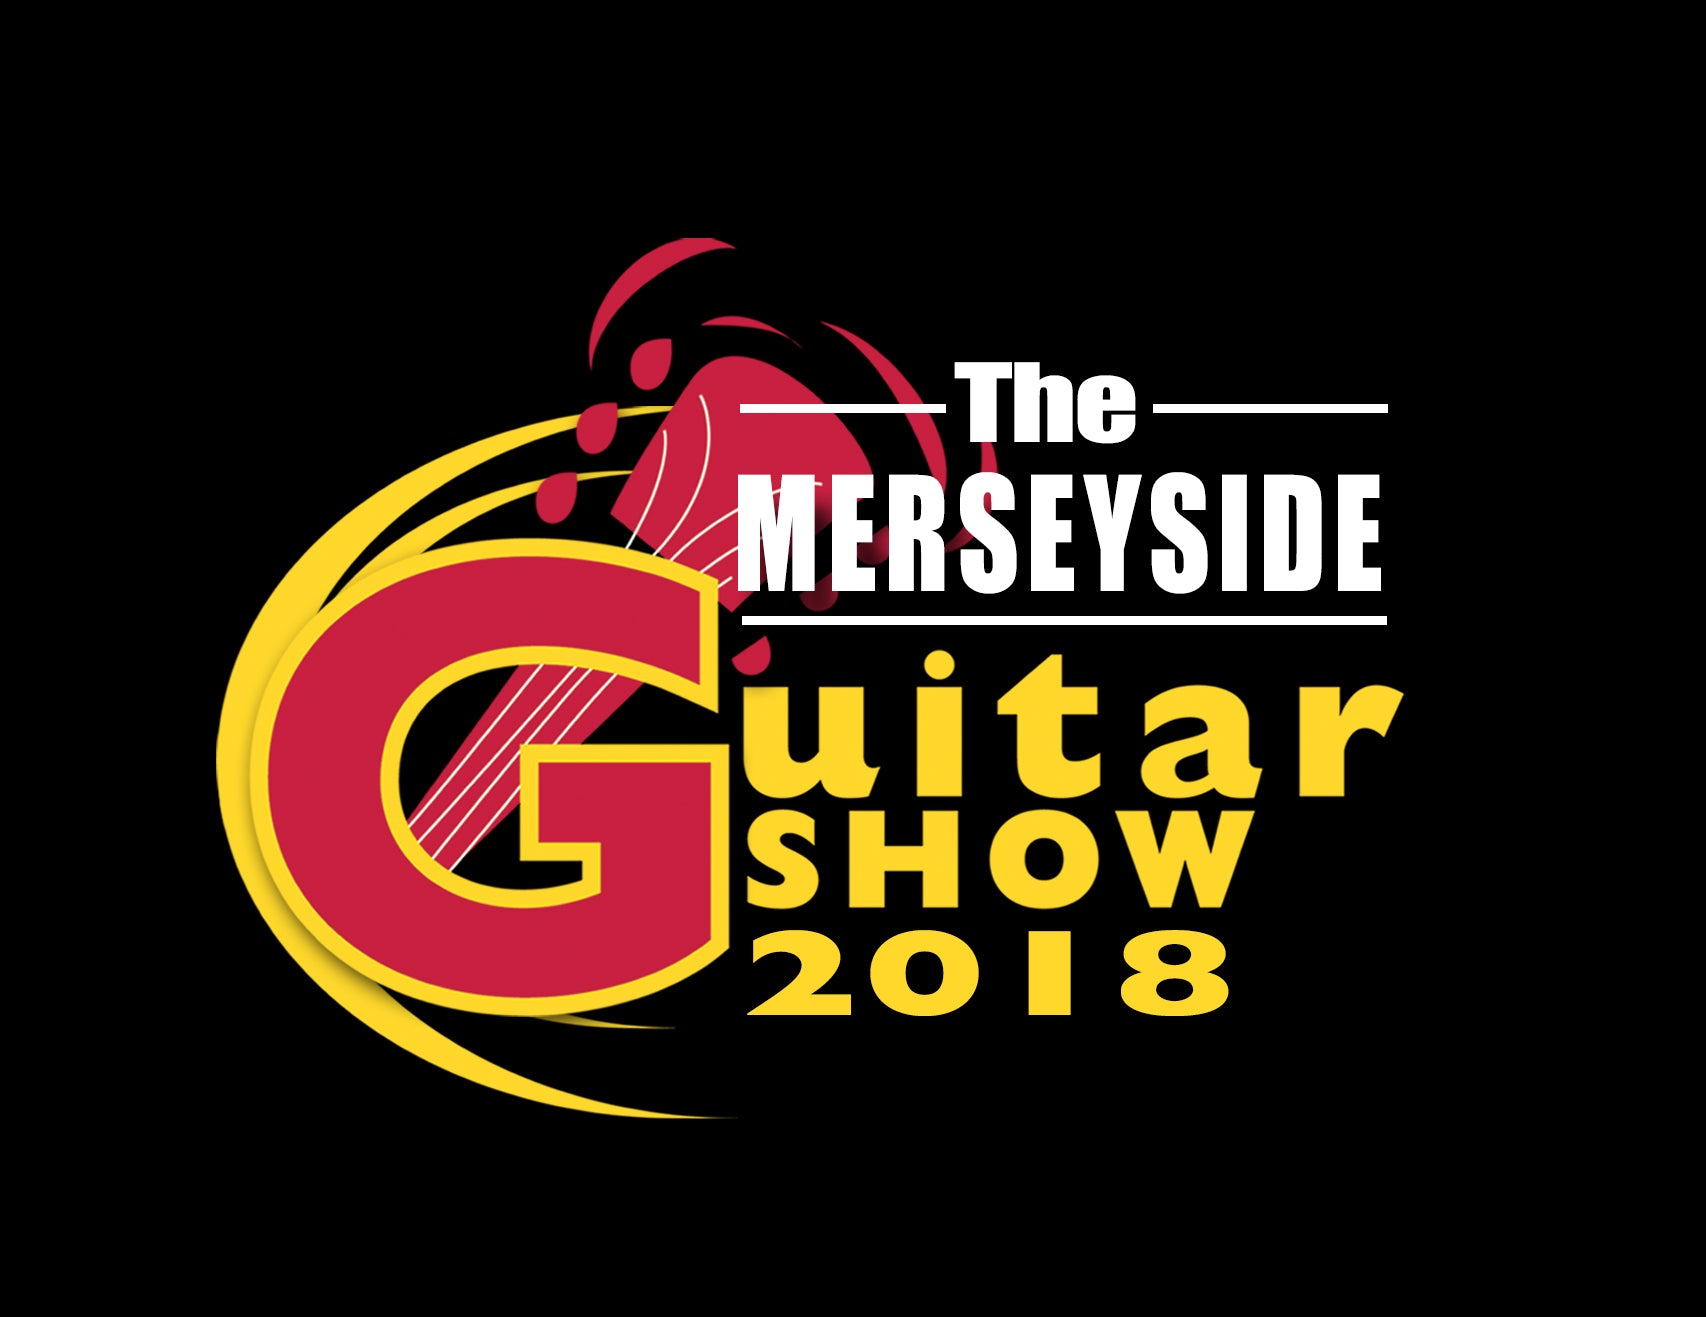 Home of Tone at the Merseyside Guitar Show